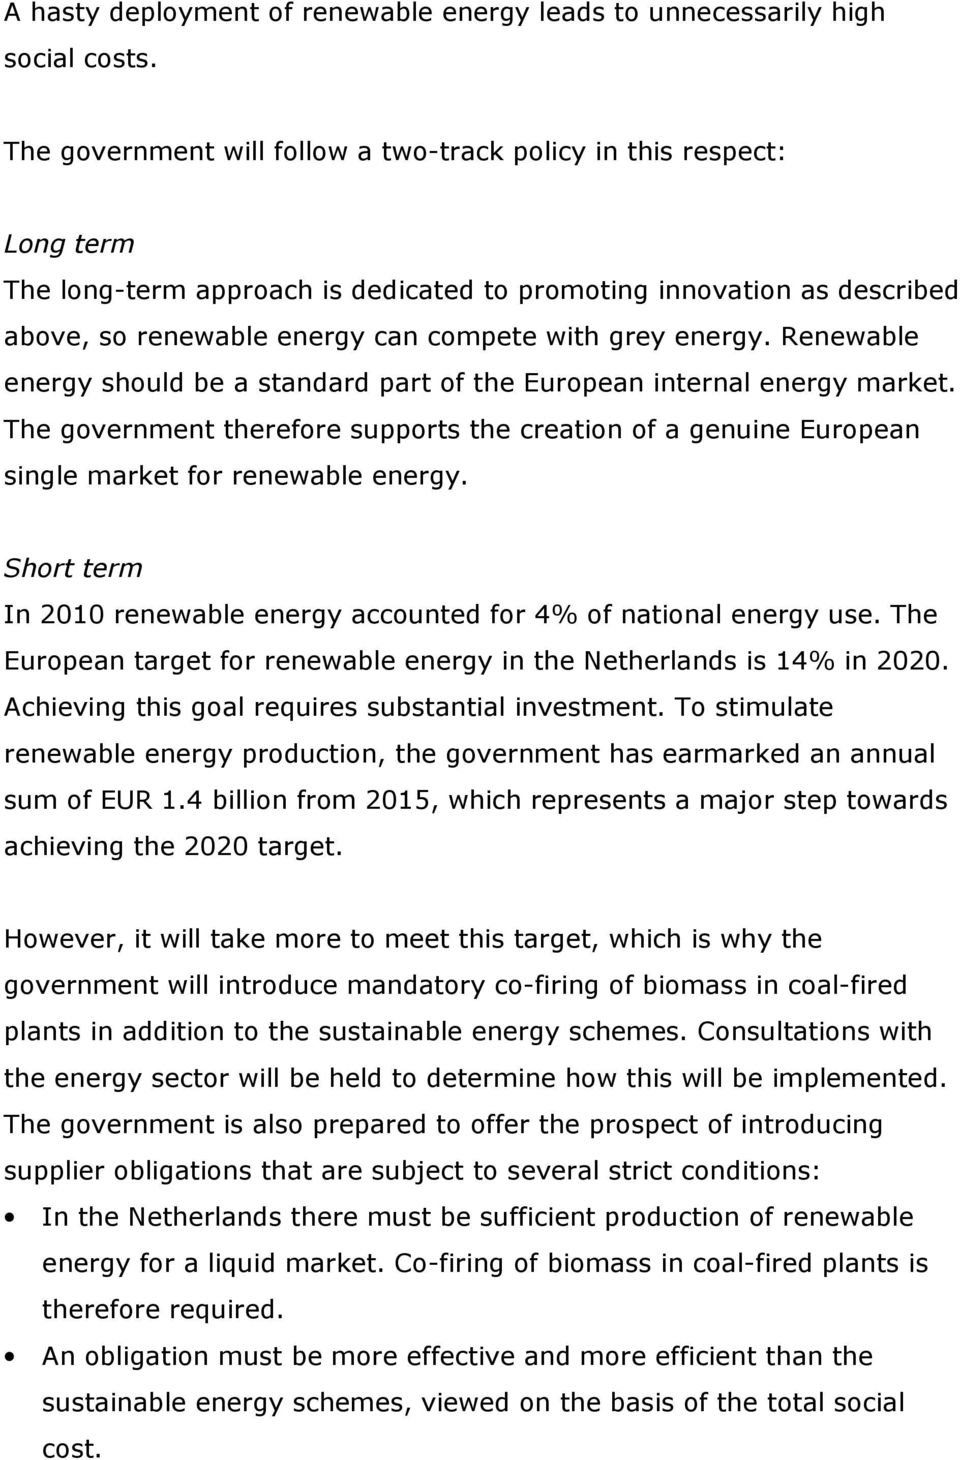 energy. Renewable energy should be a standard part of the European internal energy market. The government therefore supports the creation of a genuine European single market for renewable energy.